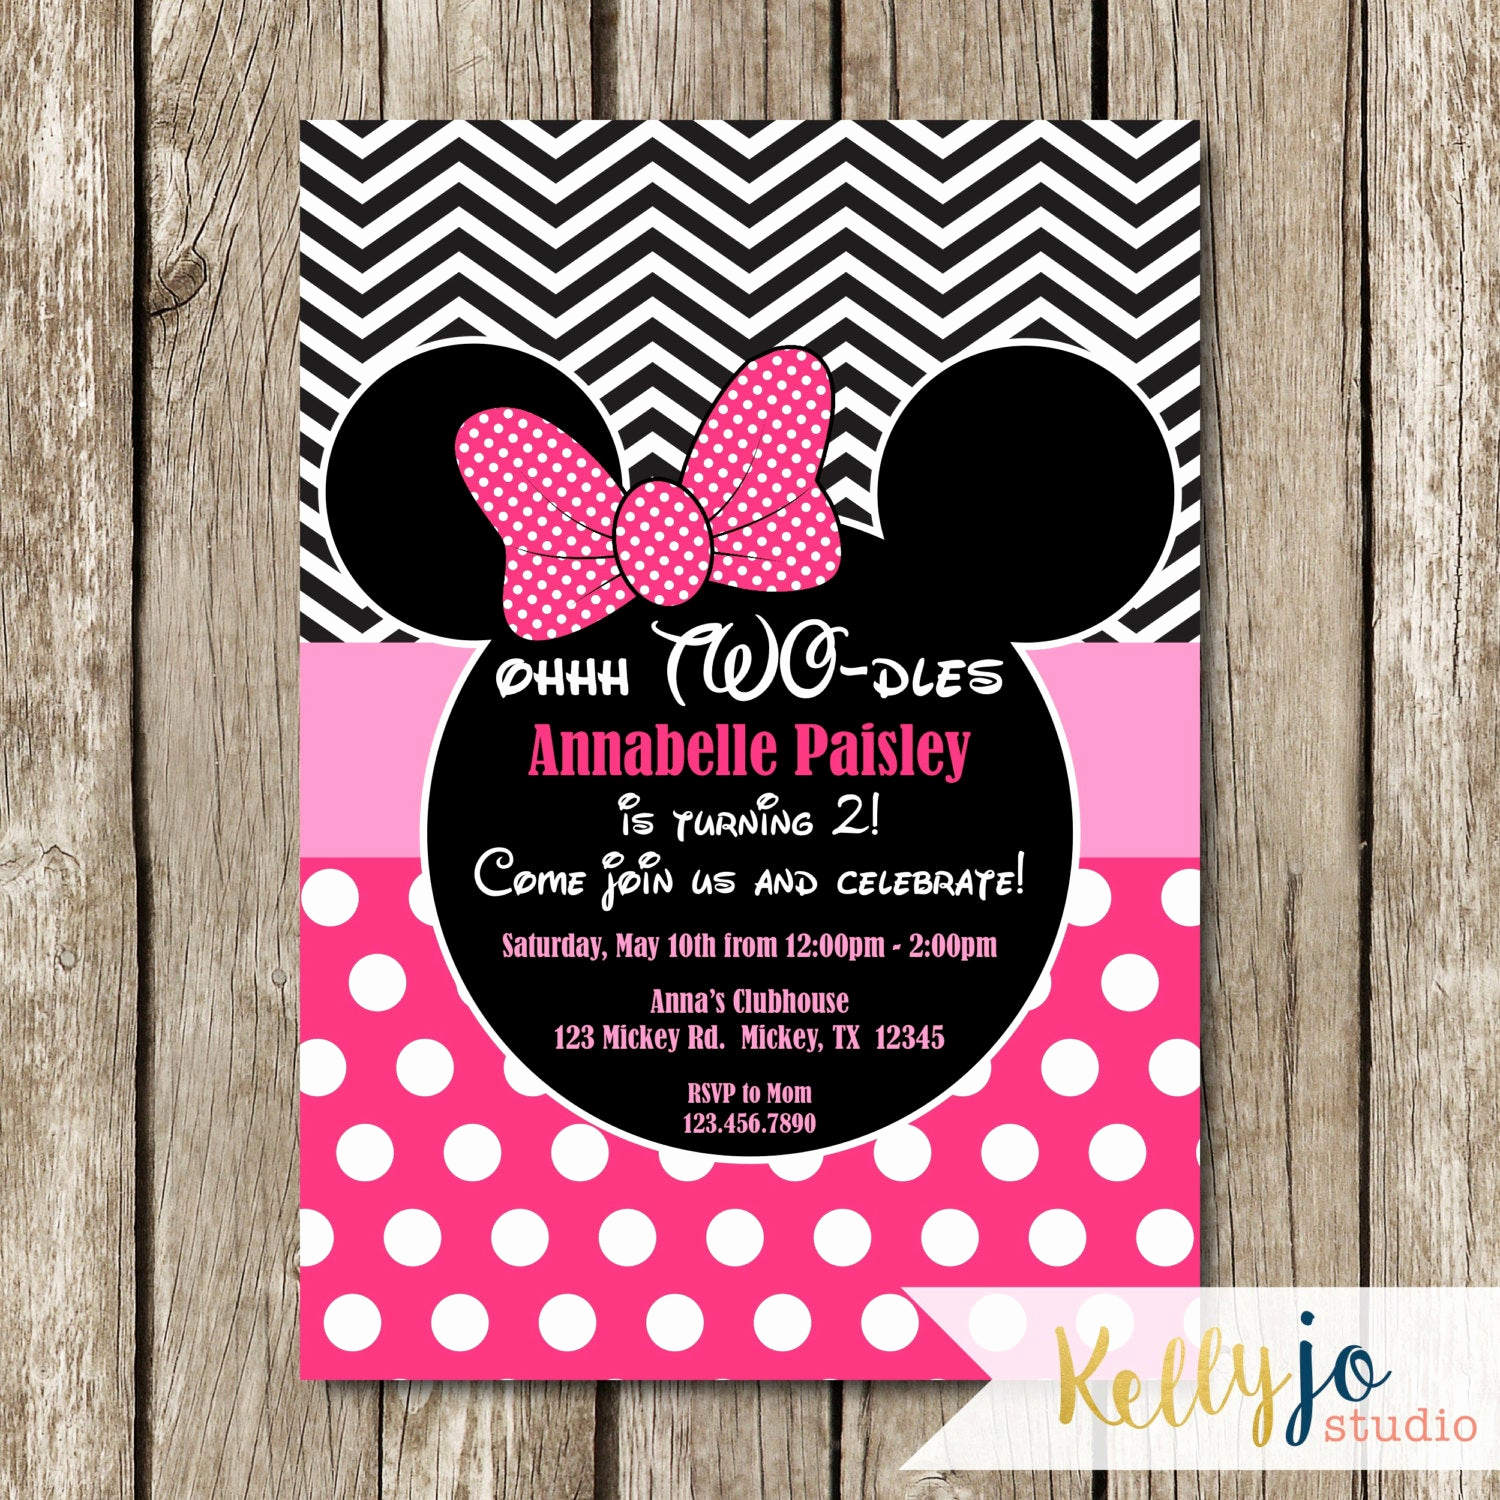 Oh Two Dles Invitation Beautiful Pink Minnie Mouse Oh Two Dles Birthday Invites Pink Minnie